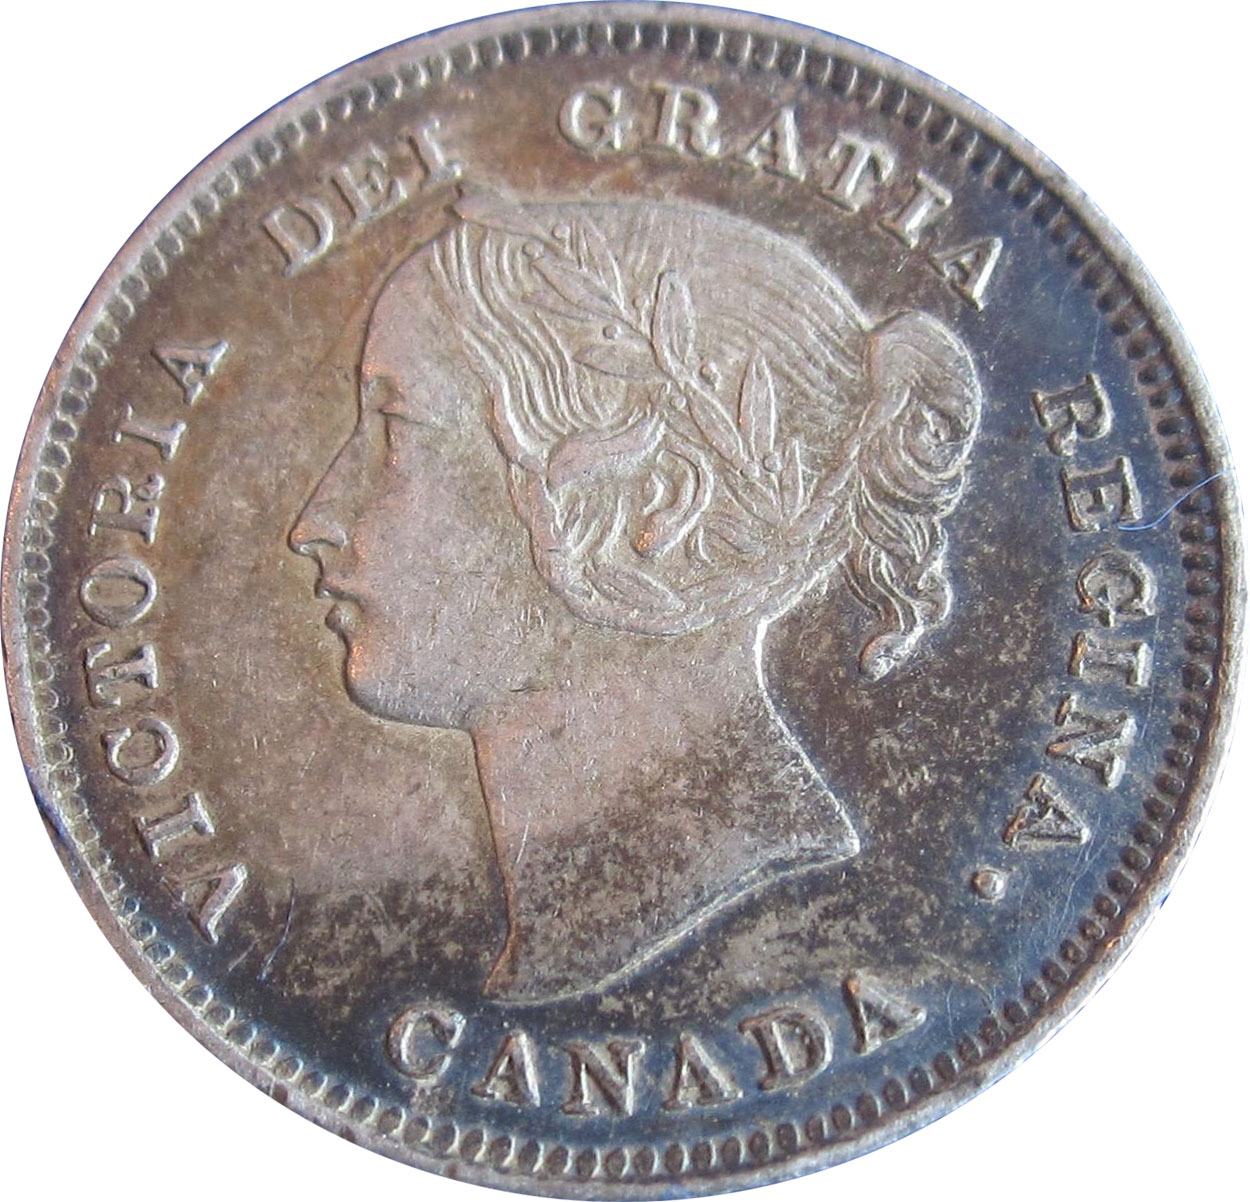 EF-40 - 5 cents 1858 to 1901 - Victoria